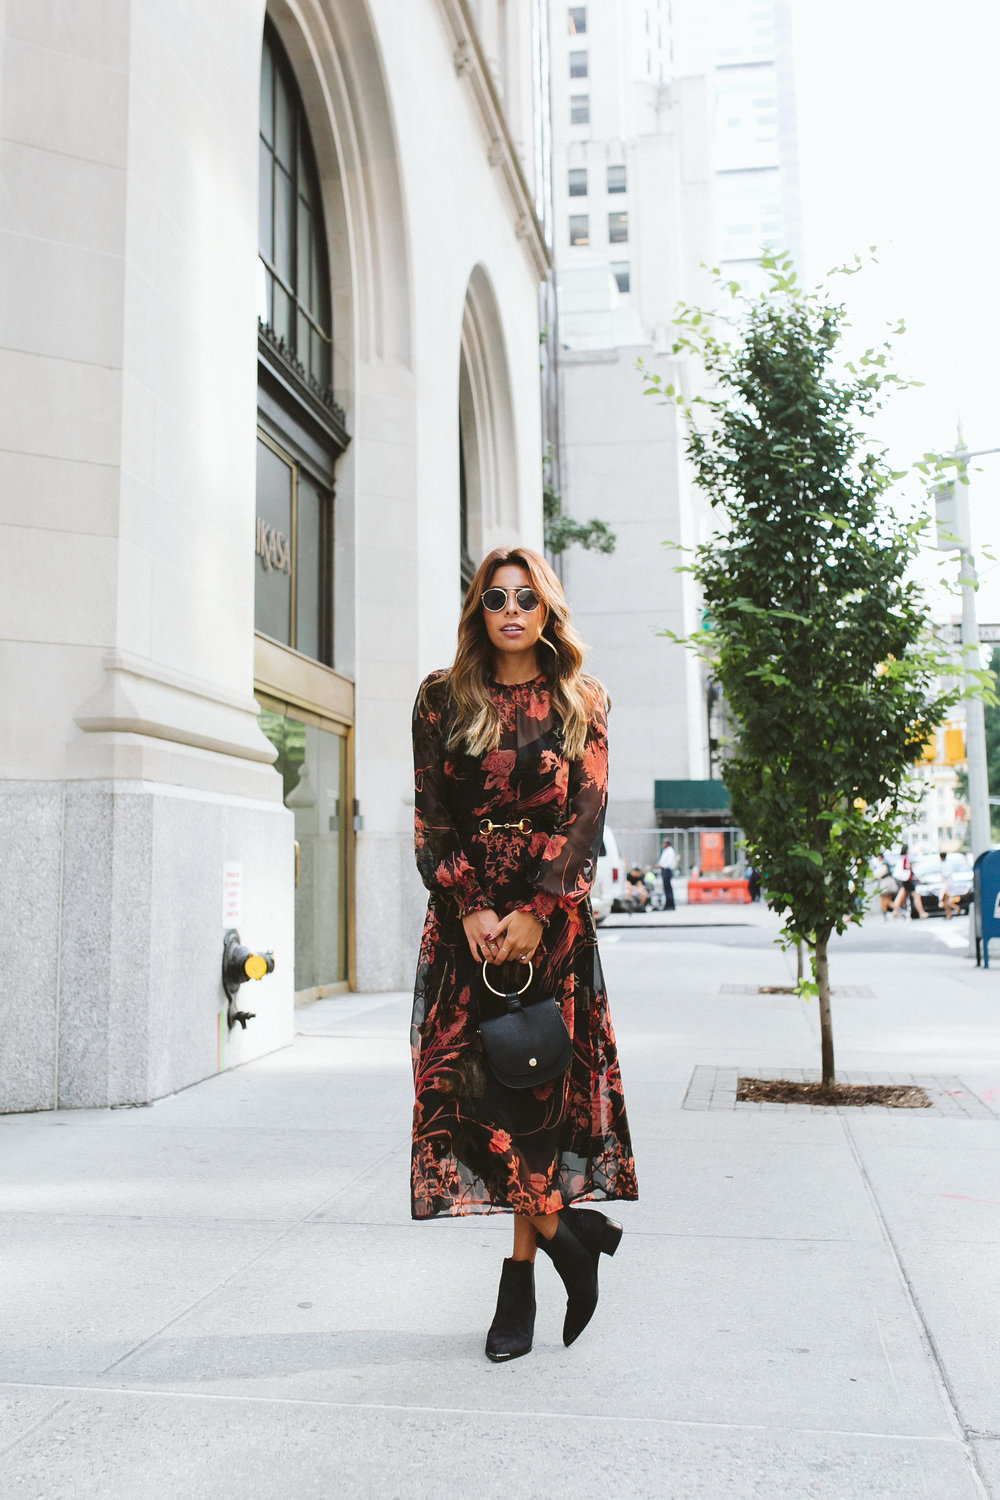 fall floral zara dress, how to transition outfit for fall, gucci belt